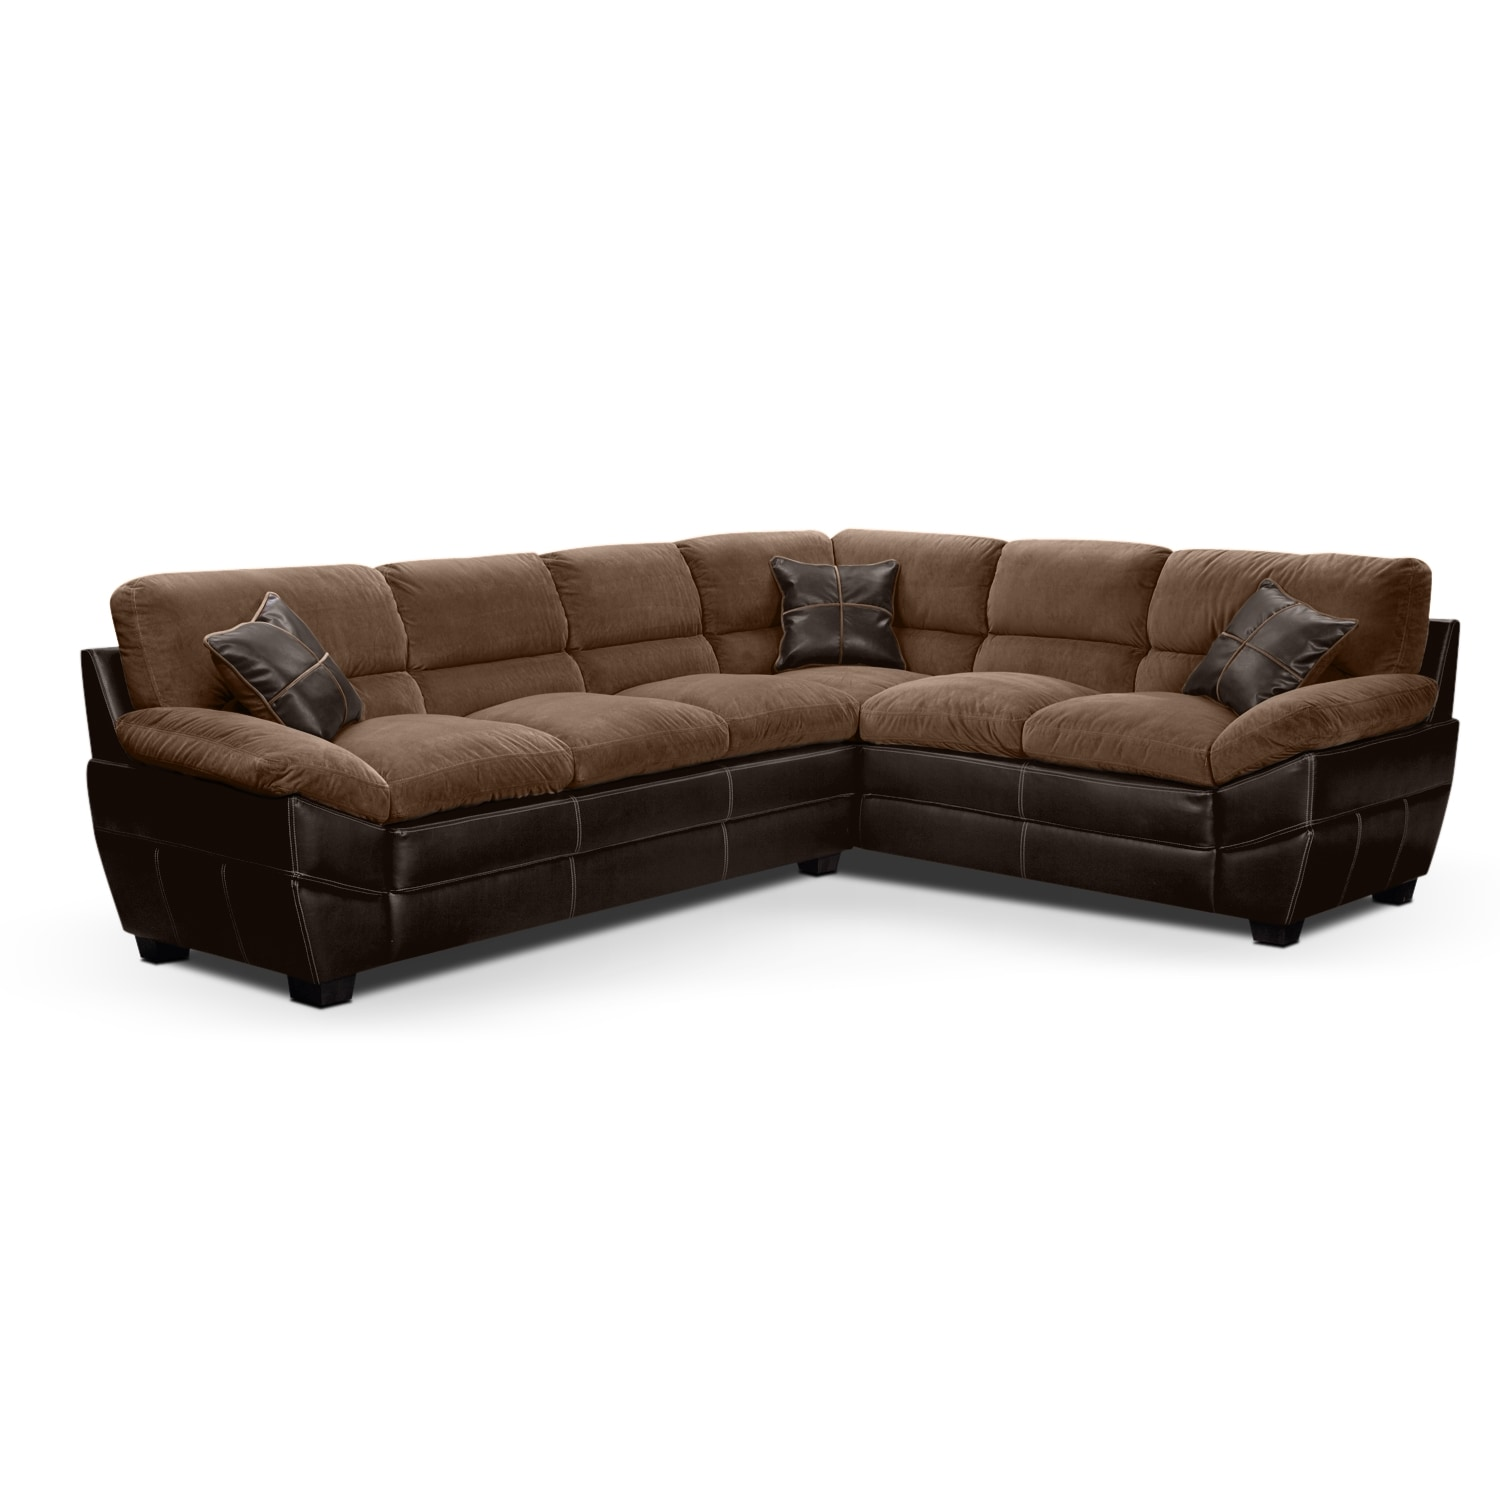 Living Room Furniture - Chandler Beige II 2 Pc. Sectional